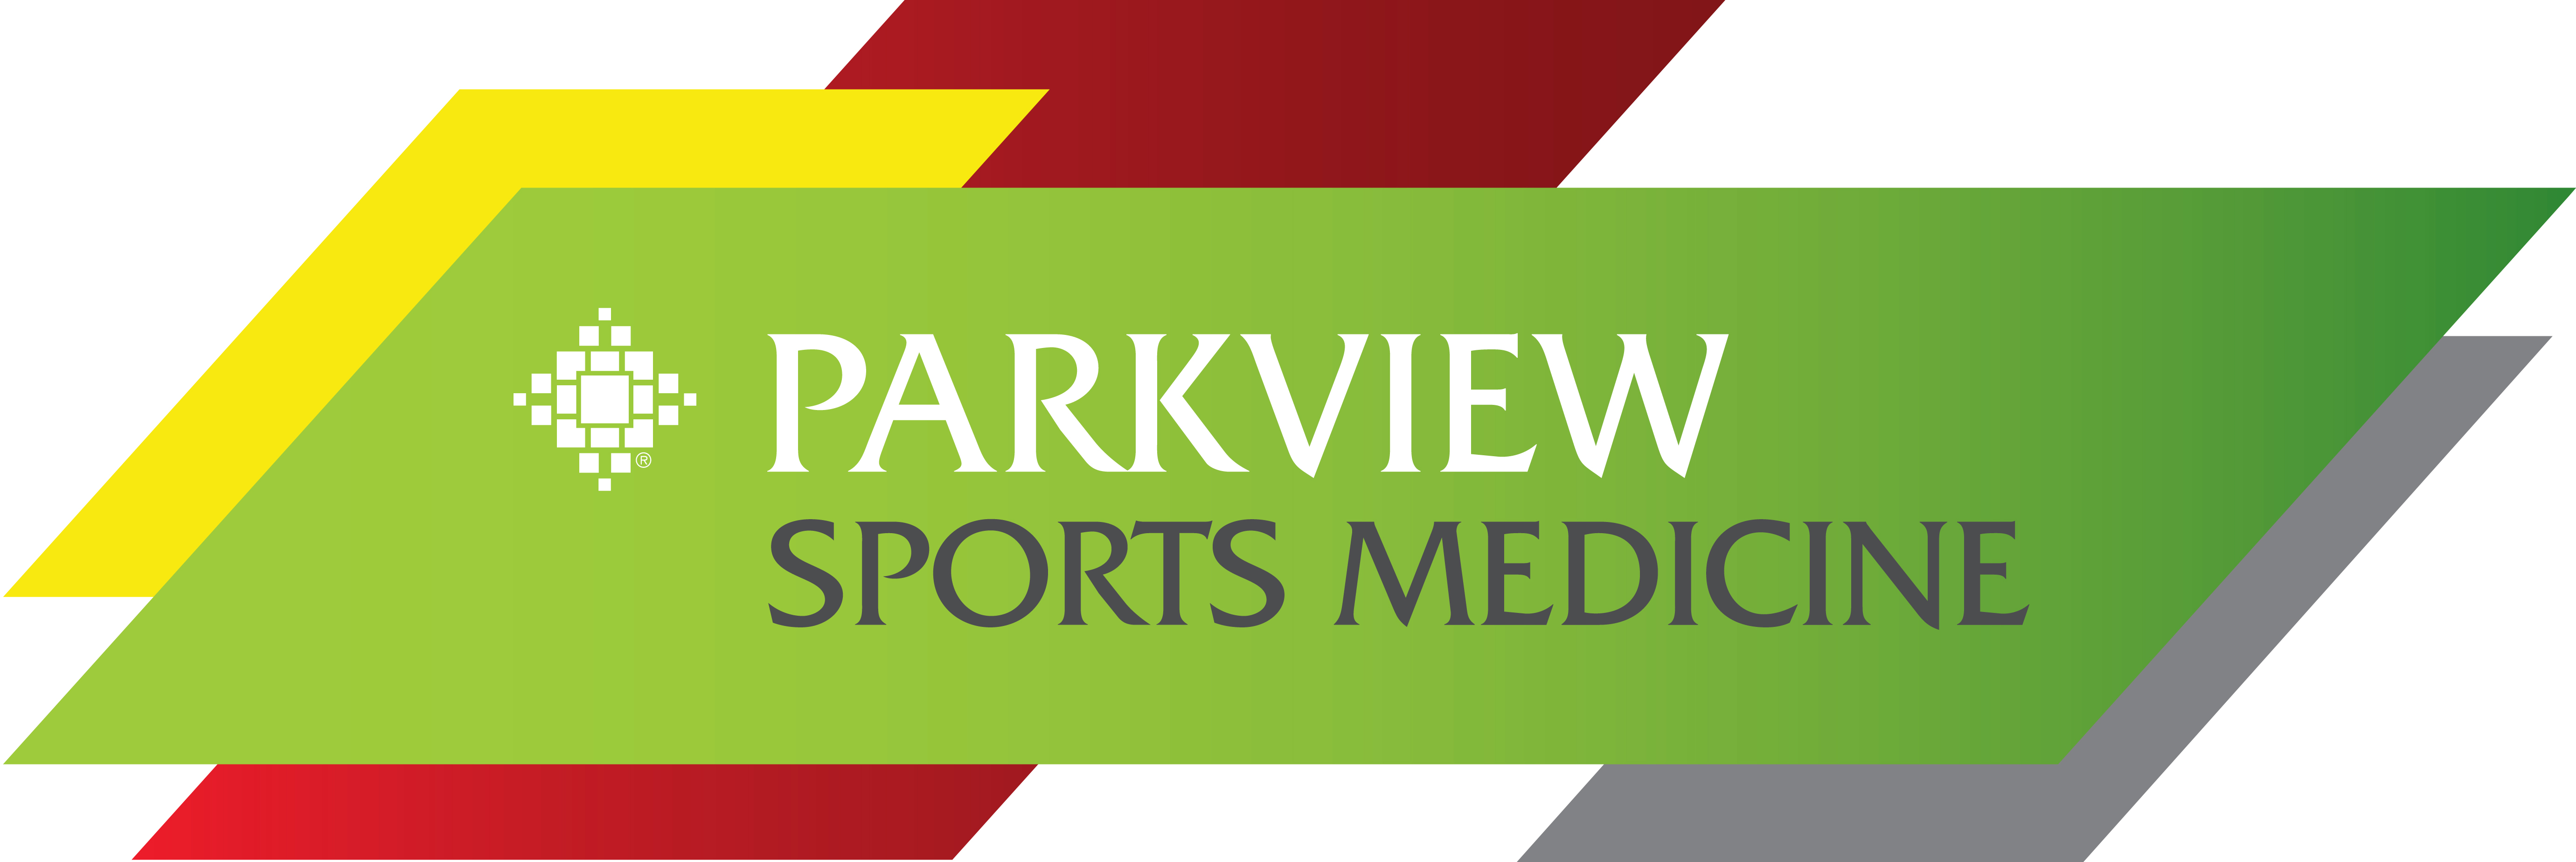 Fort Wayne Freeze Hockey is sponsored by Parkview Sports Medicine